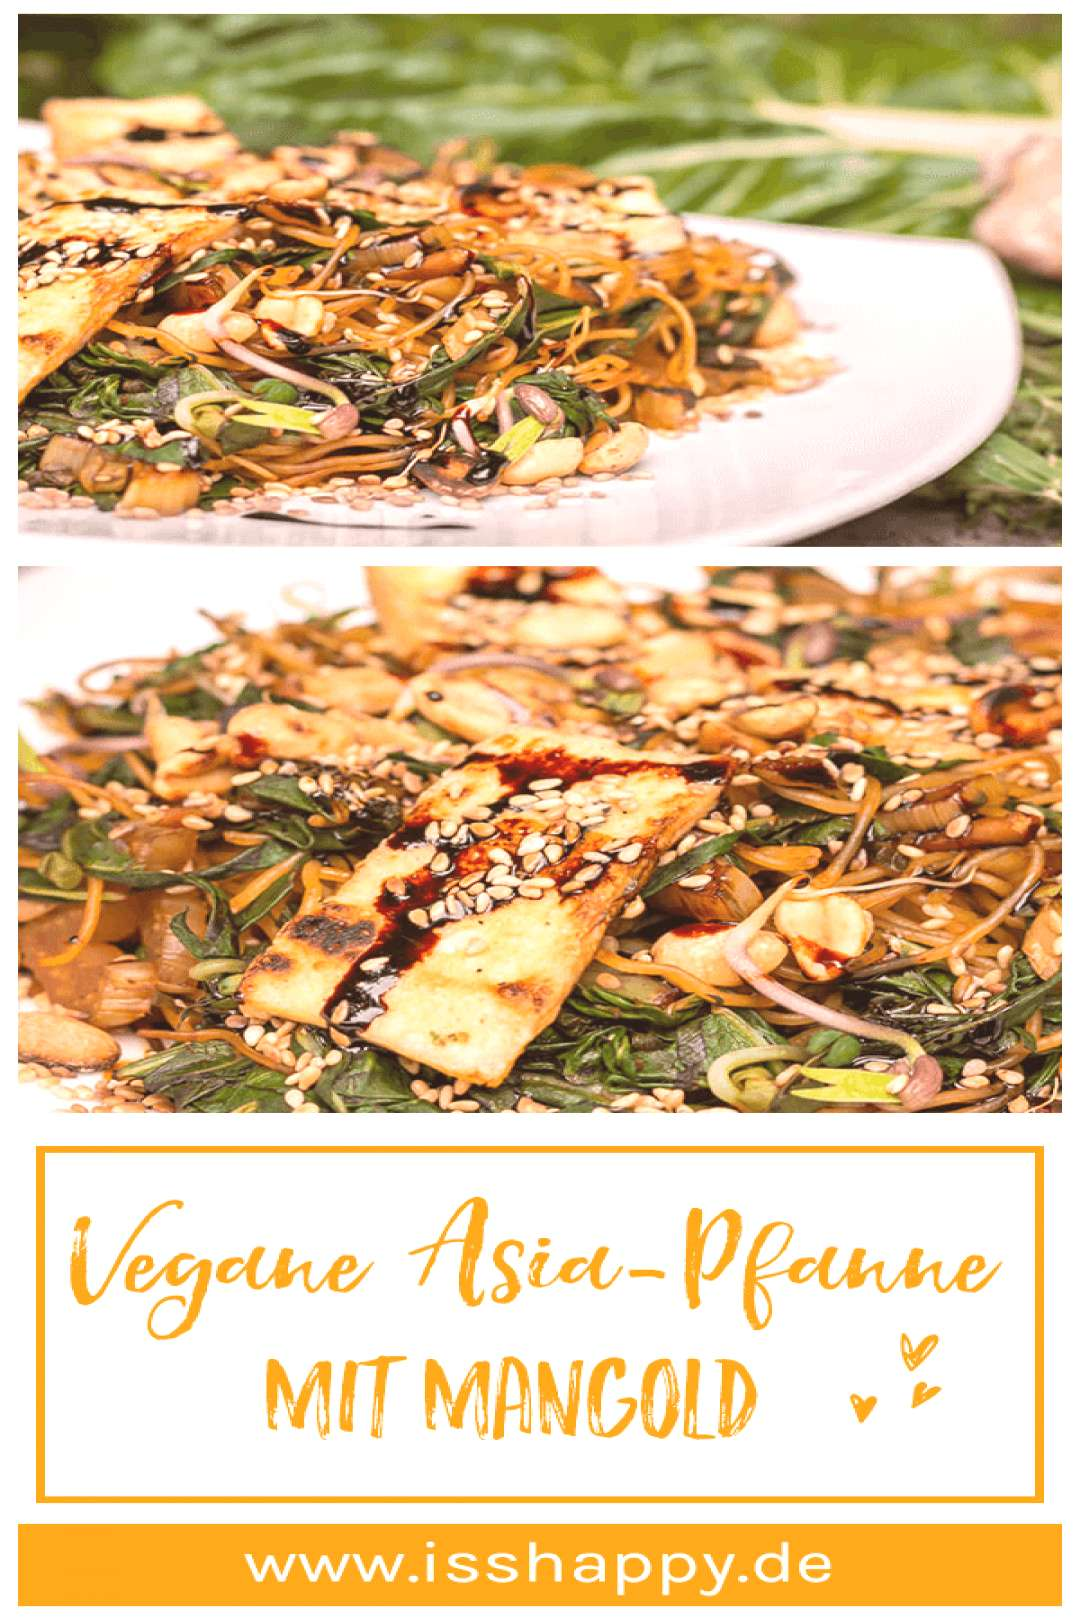 Vegan chard recipe with rice noodles & peanuts - simple & healthy#chard